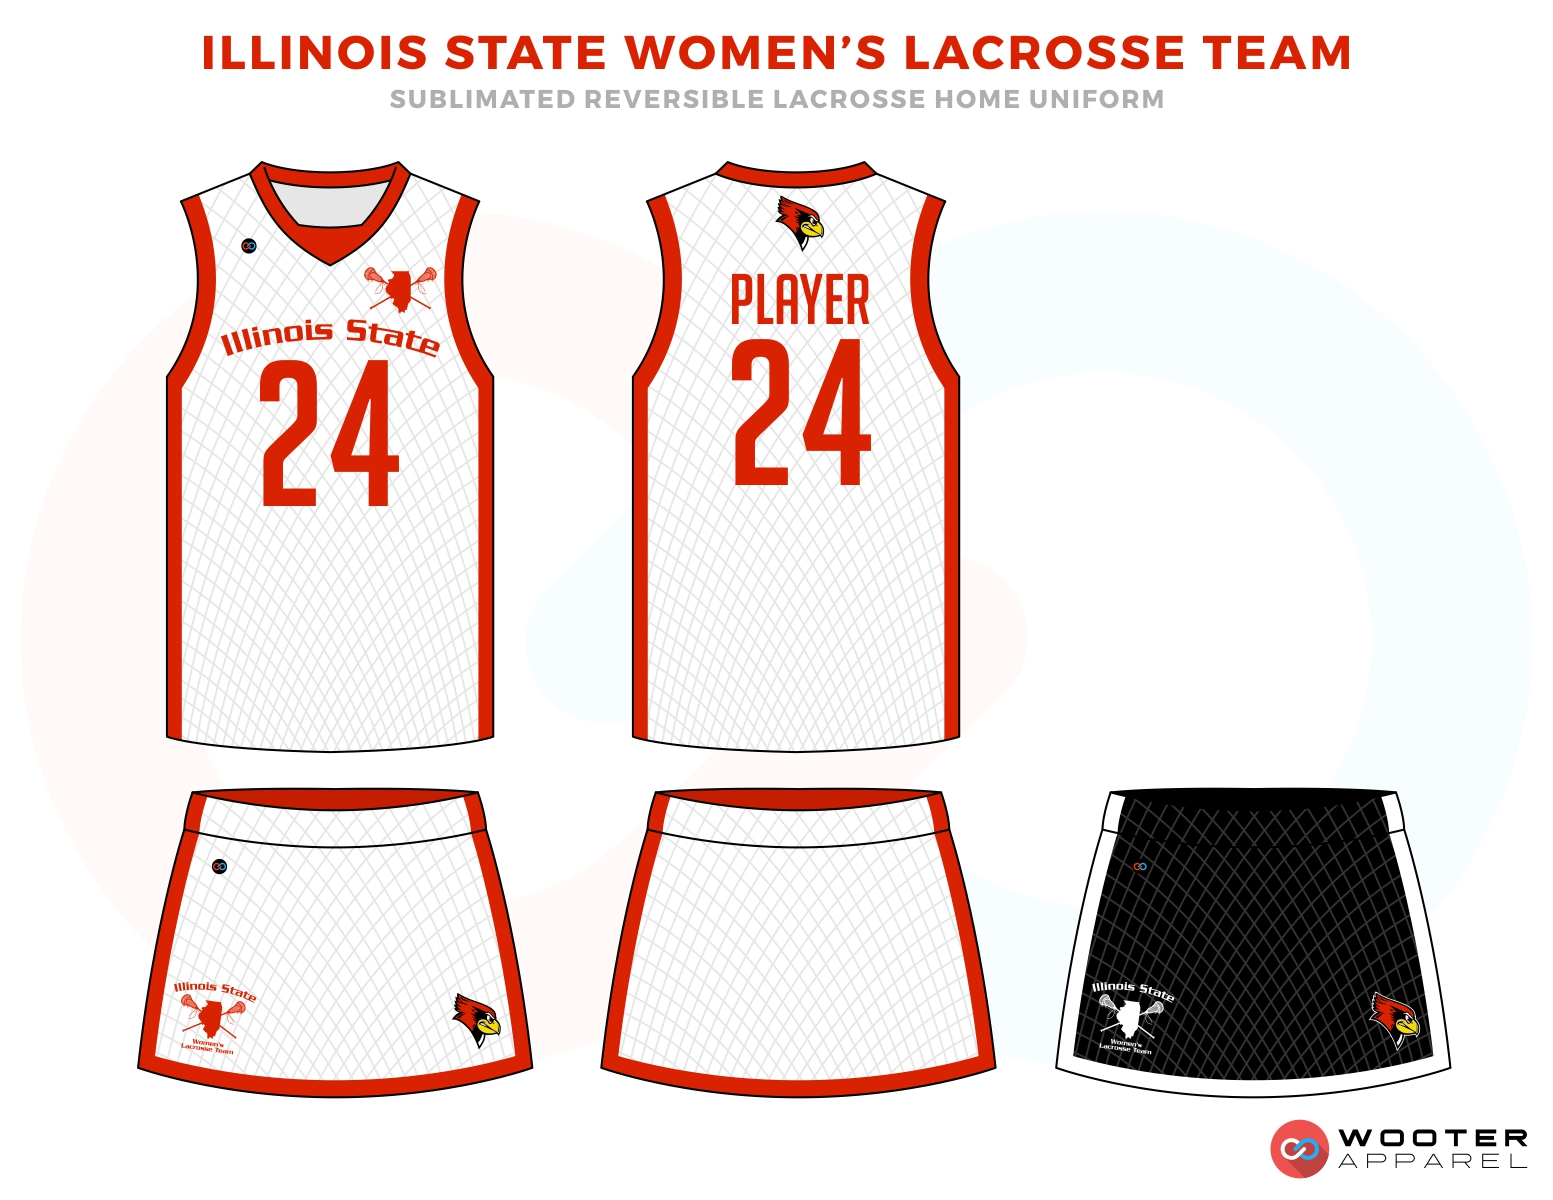 Illinois State Women's Lacrosse Team  Red and White Uniforms, Reversible Pinnies, Jerseys, skirts